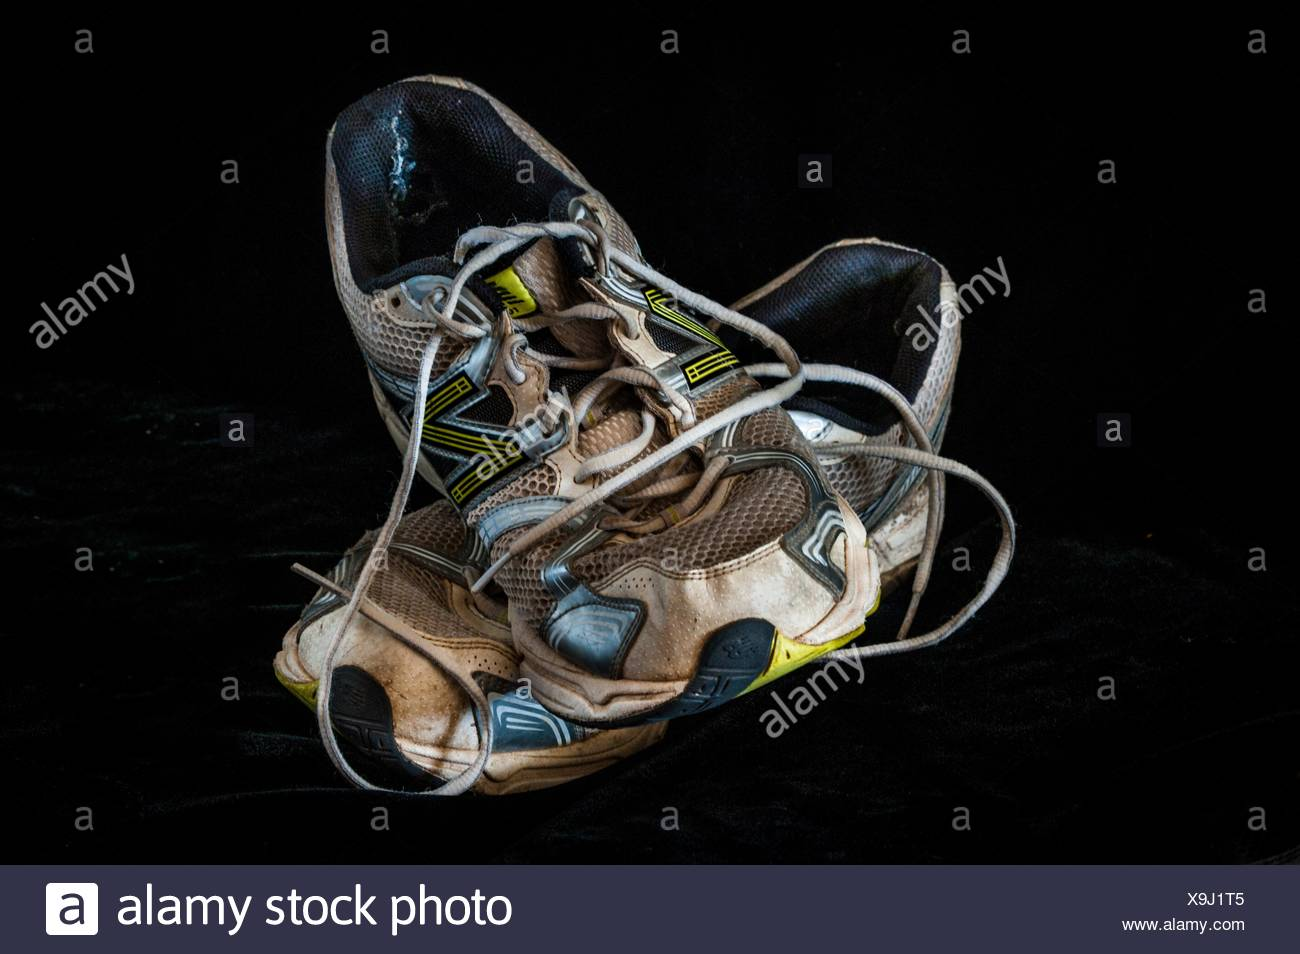 An old pair of running shoes, worn out and ready to be trashed. - Stock Image